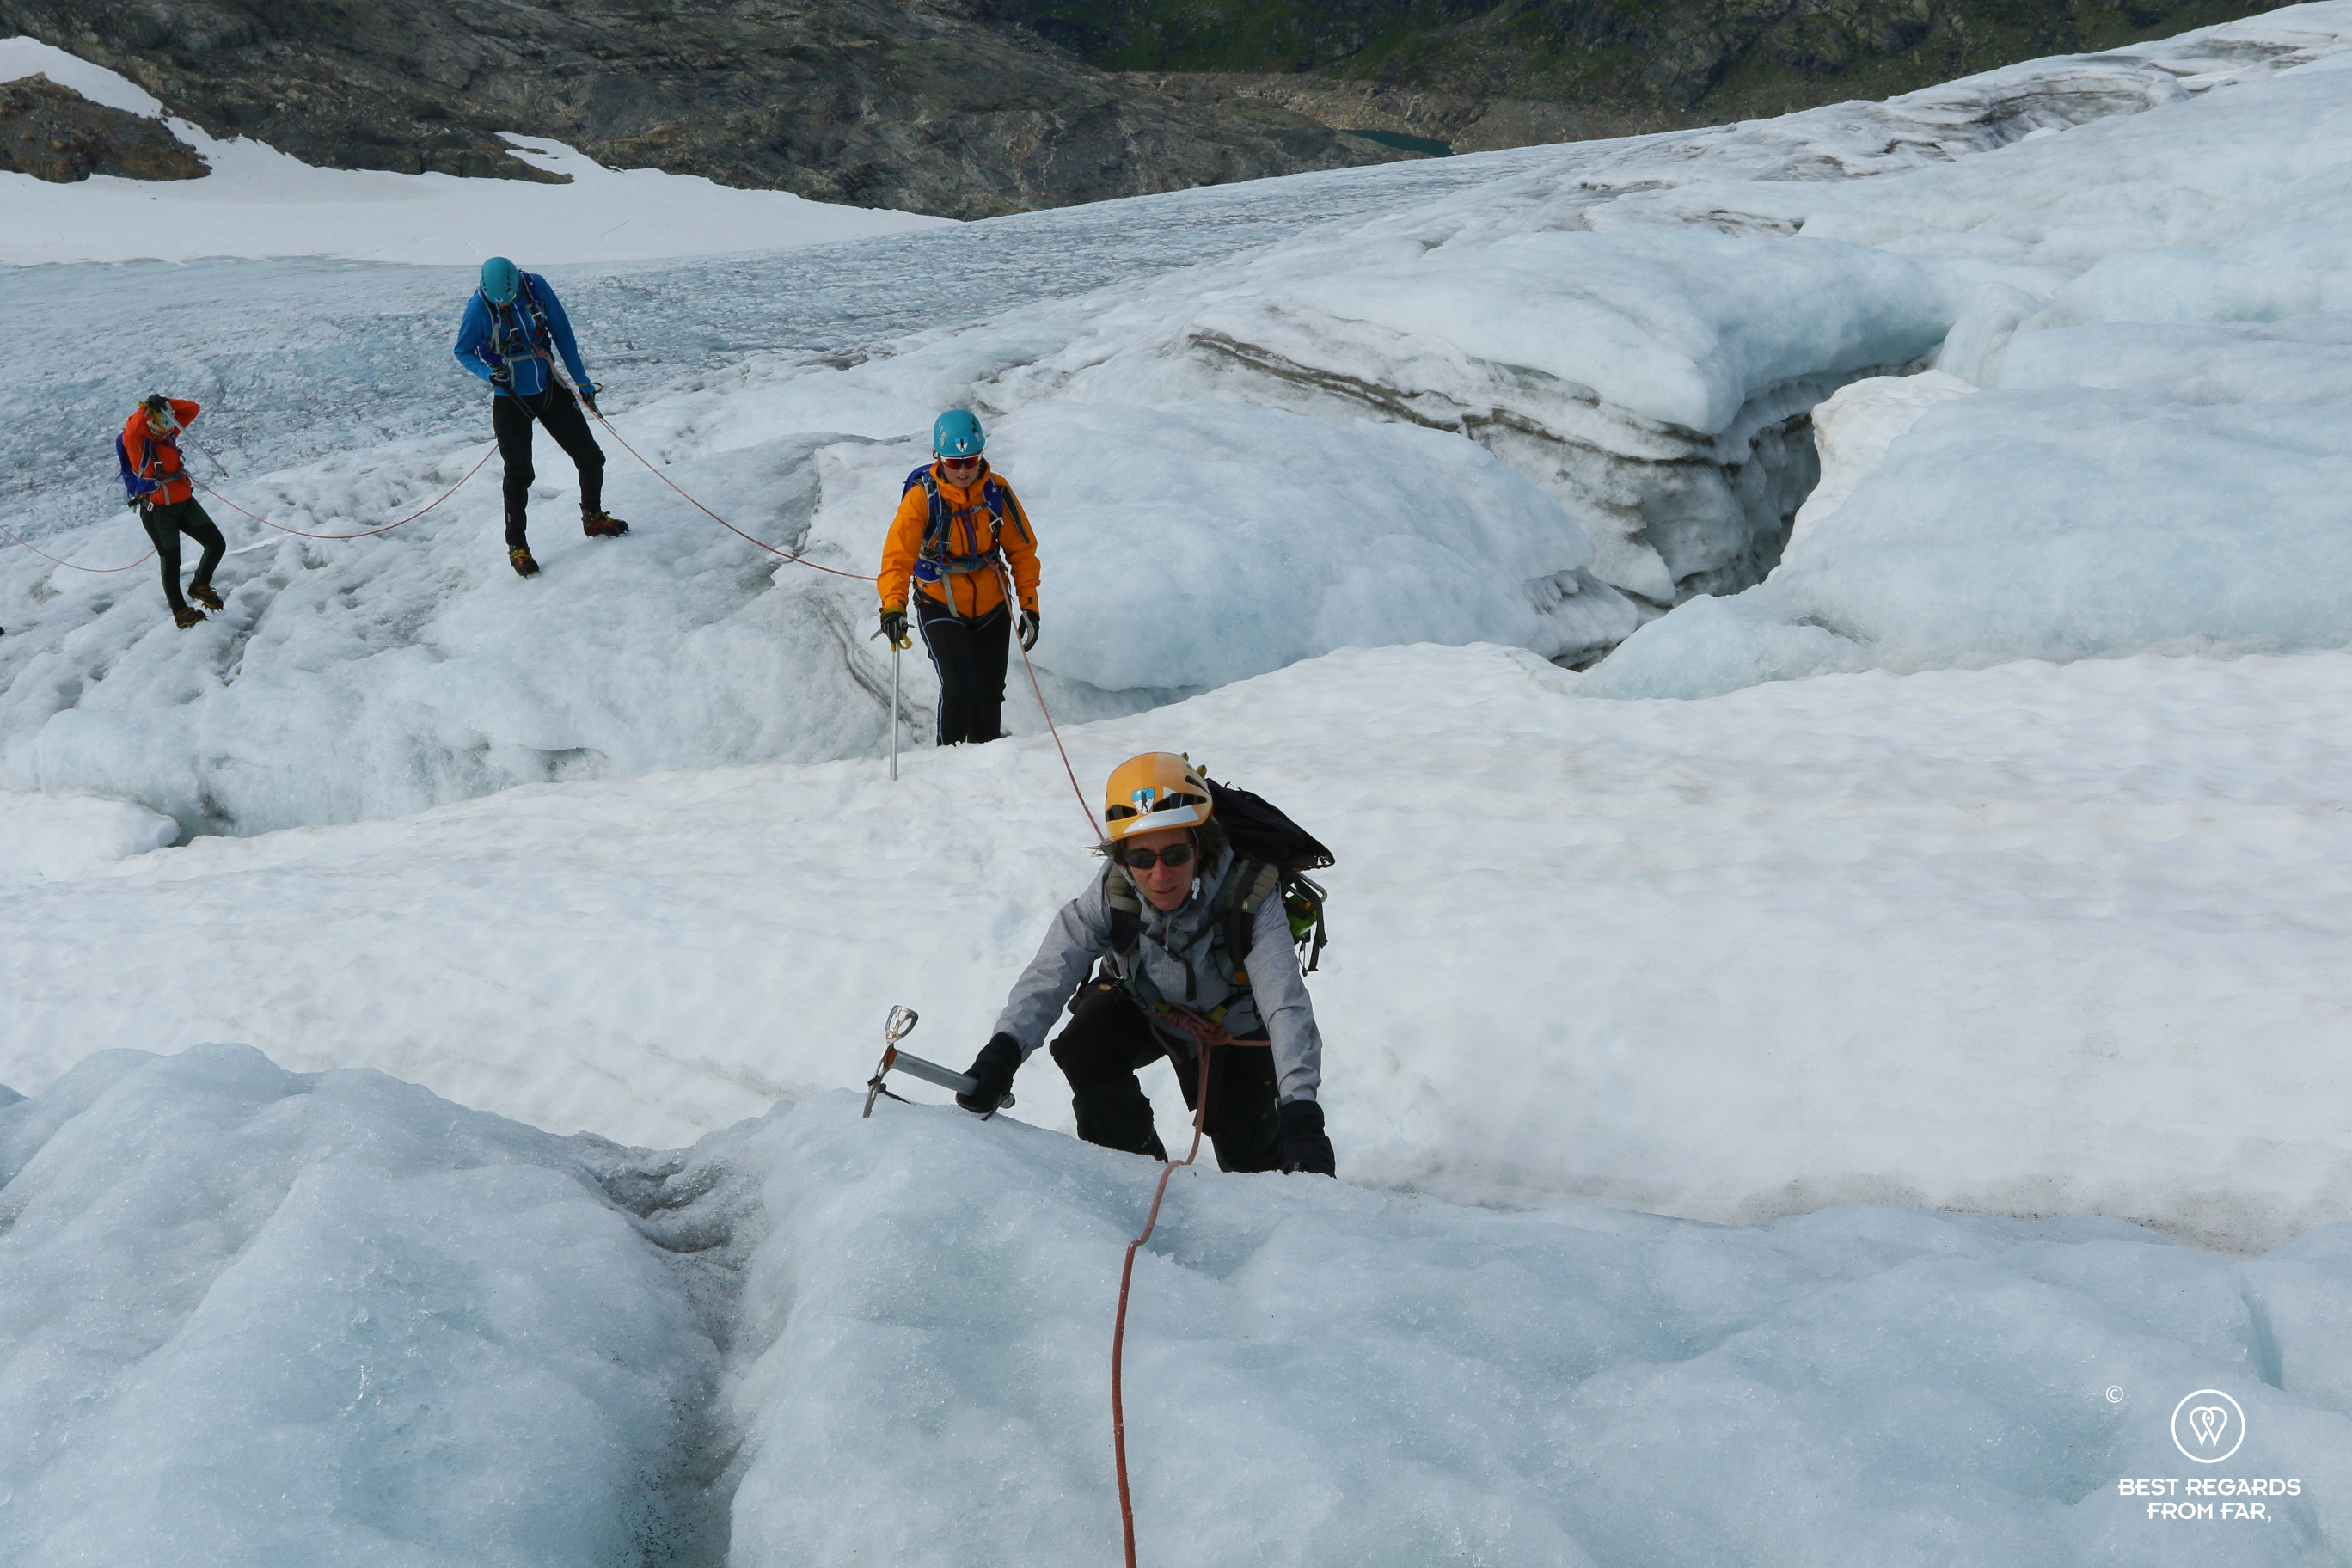 Photographer Claire Lessiau climbing out of a crevasse on the Fonna Glacier